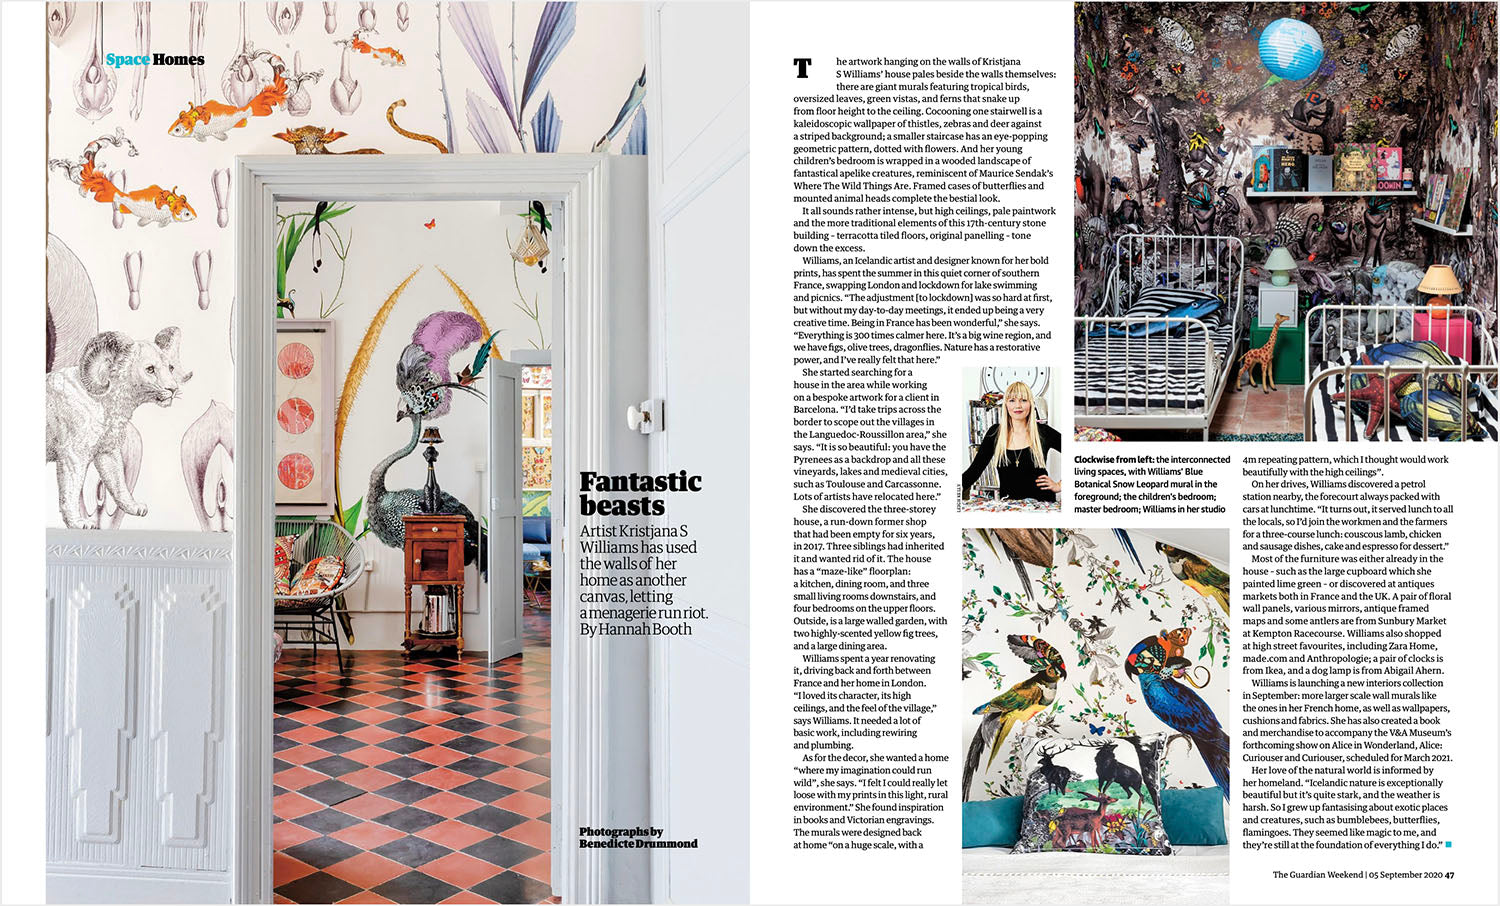 The Guardian article on French house by artist Kristjana S Williams